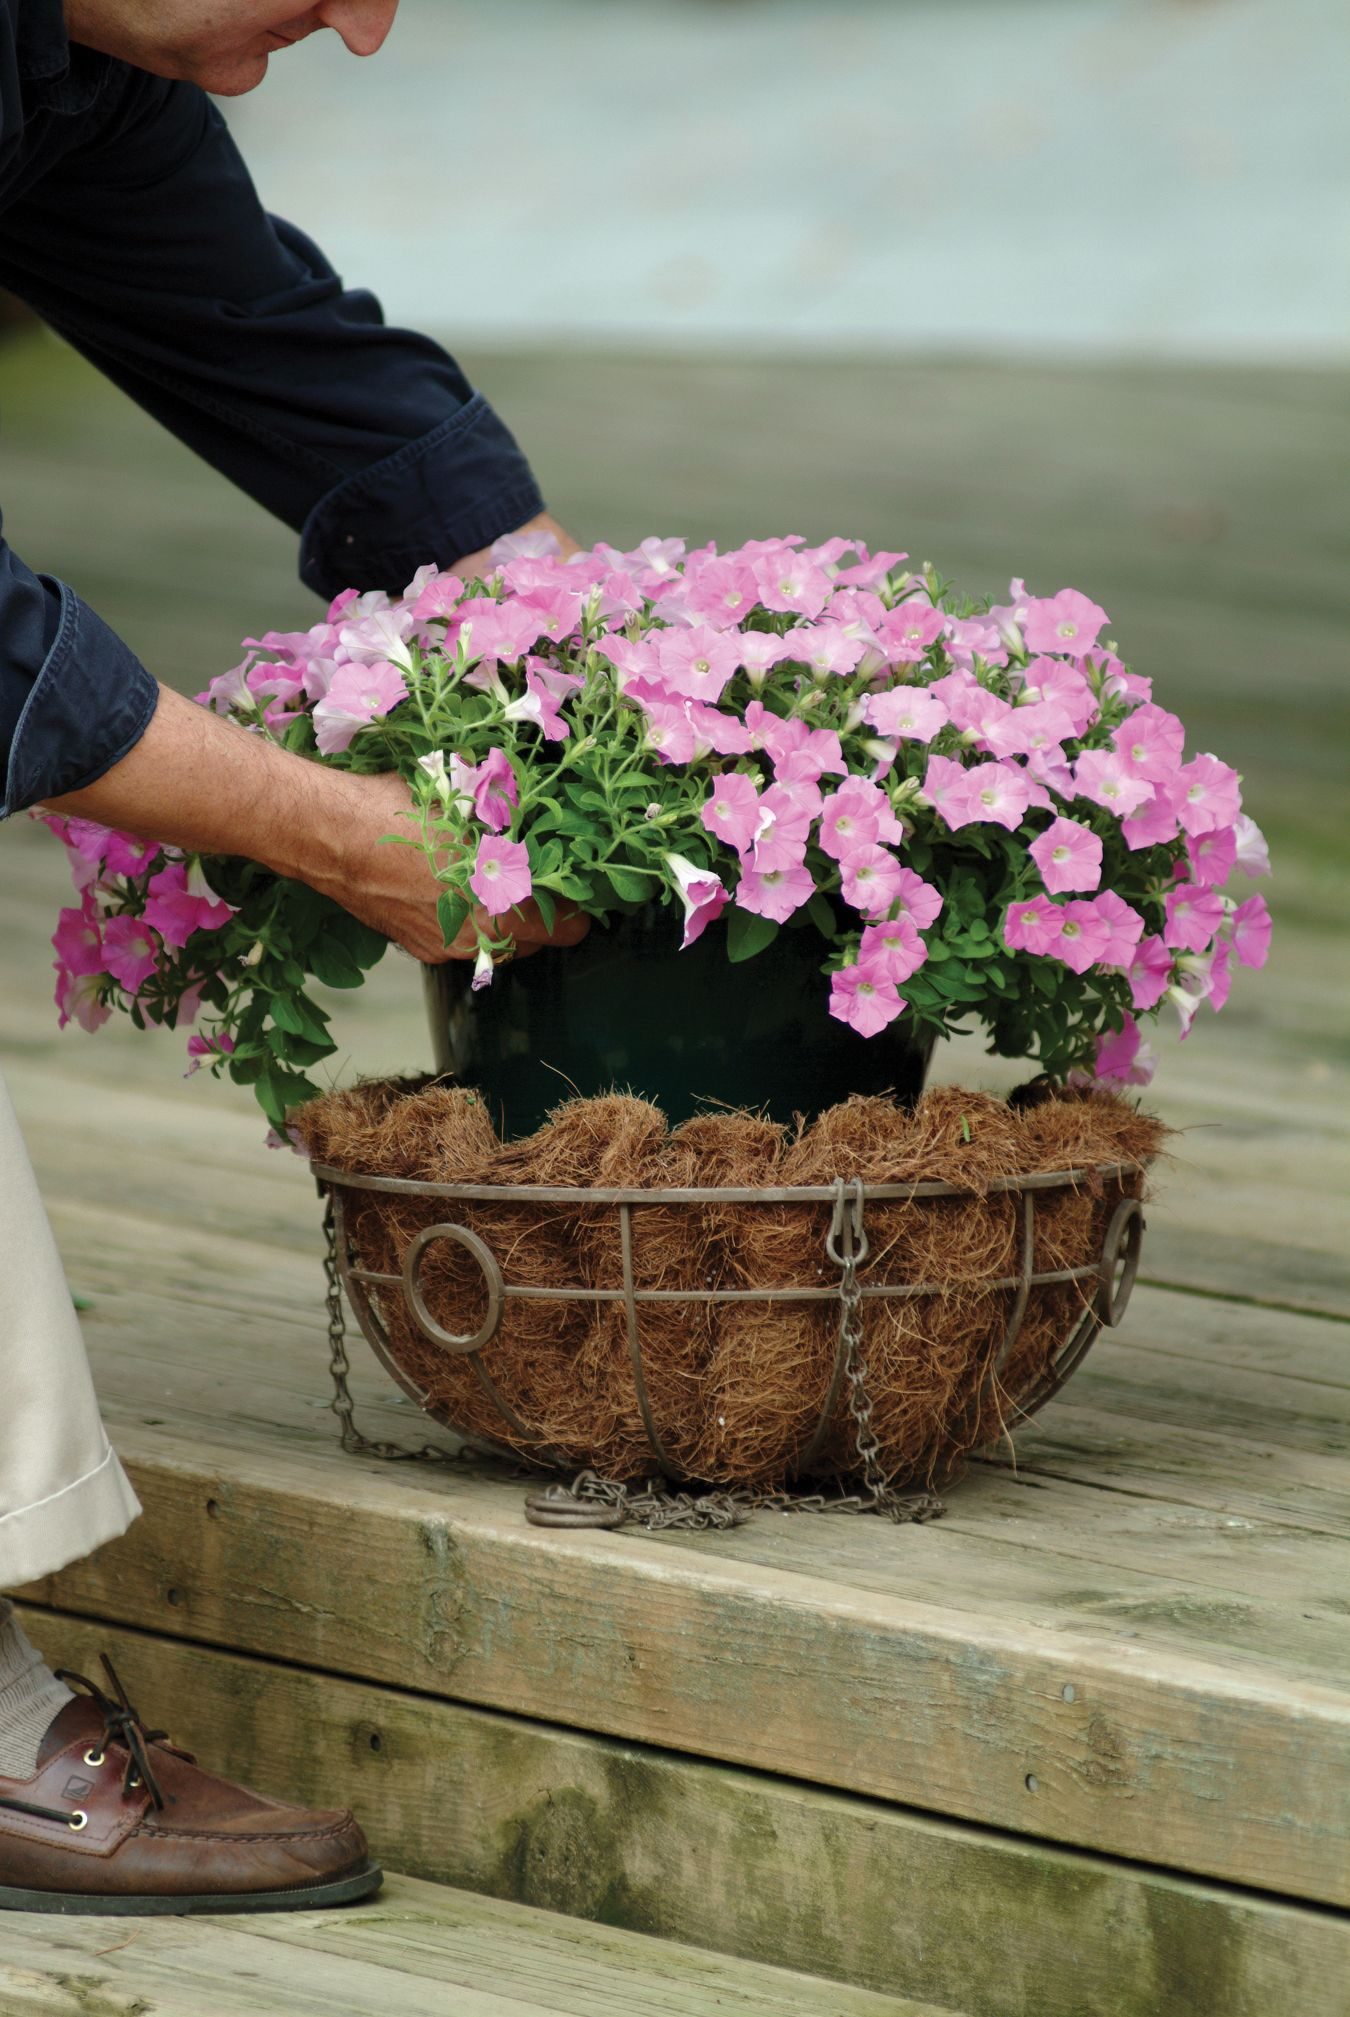 Planing This Shock Wave Pink Shades Petunia Into A Hanging Basket